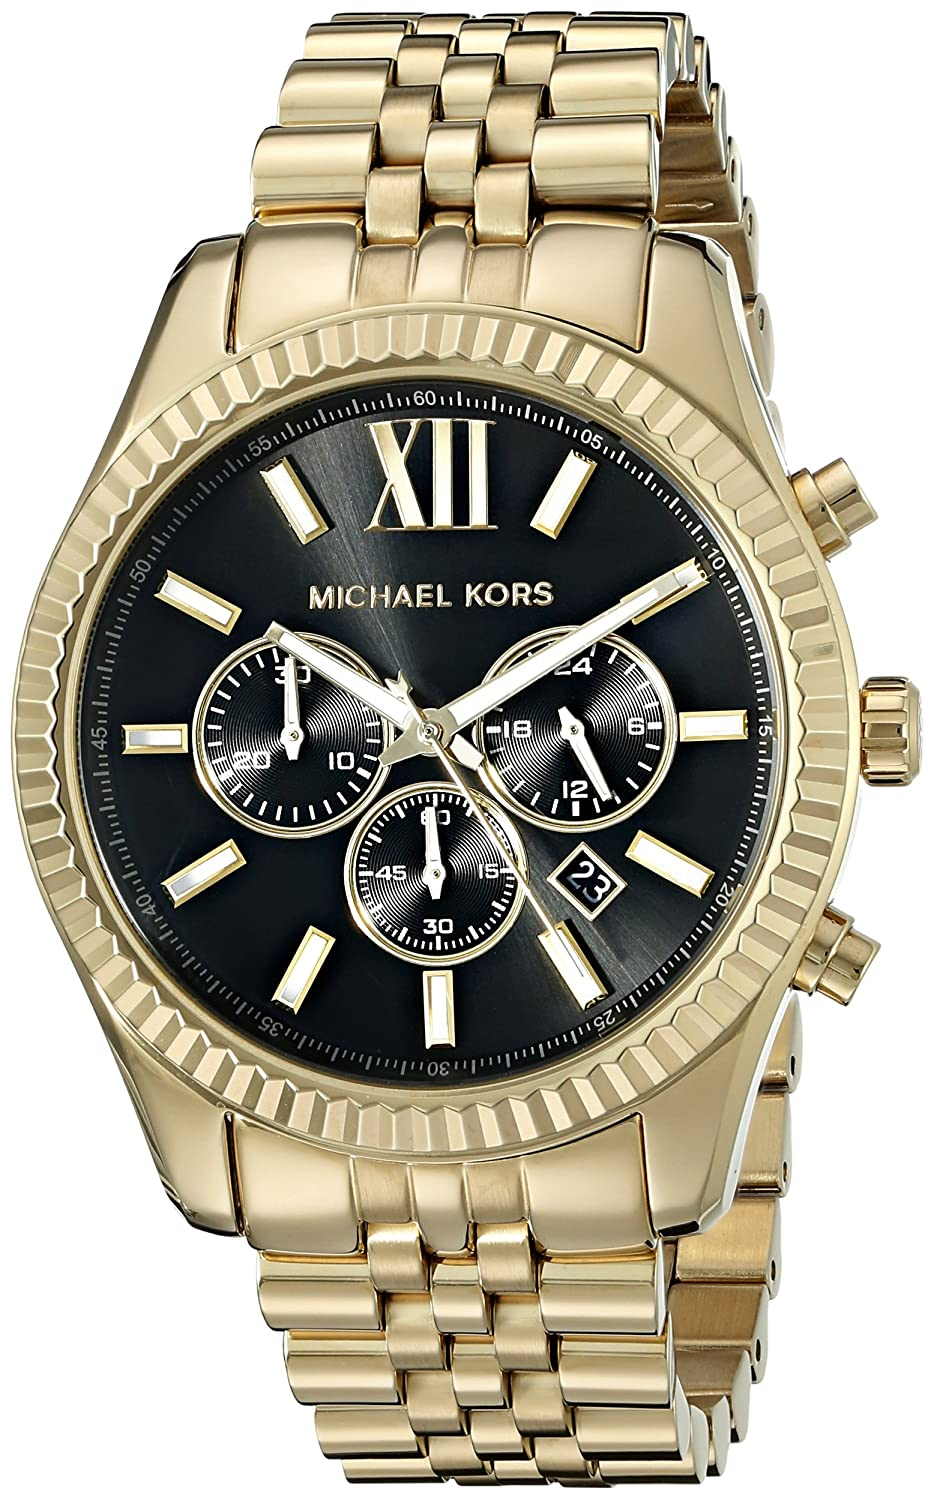 amazon com michael kors men s lexington gold tone watch mk8286 amazon com michael kors men s lexington gold tone watch mk8286 michael kors watches